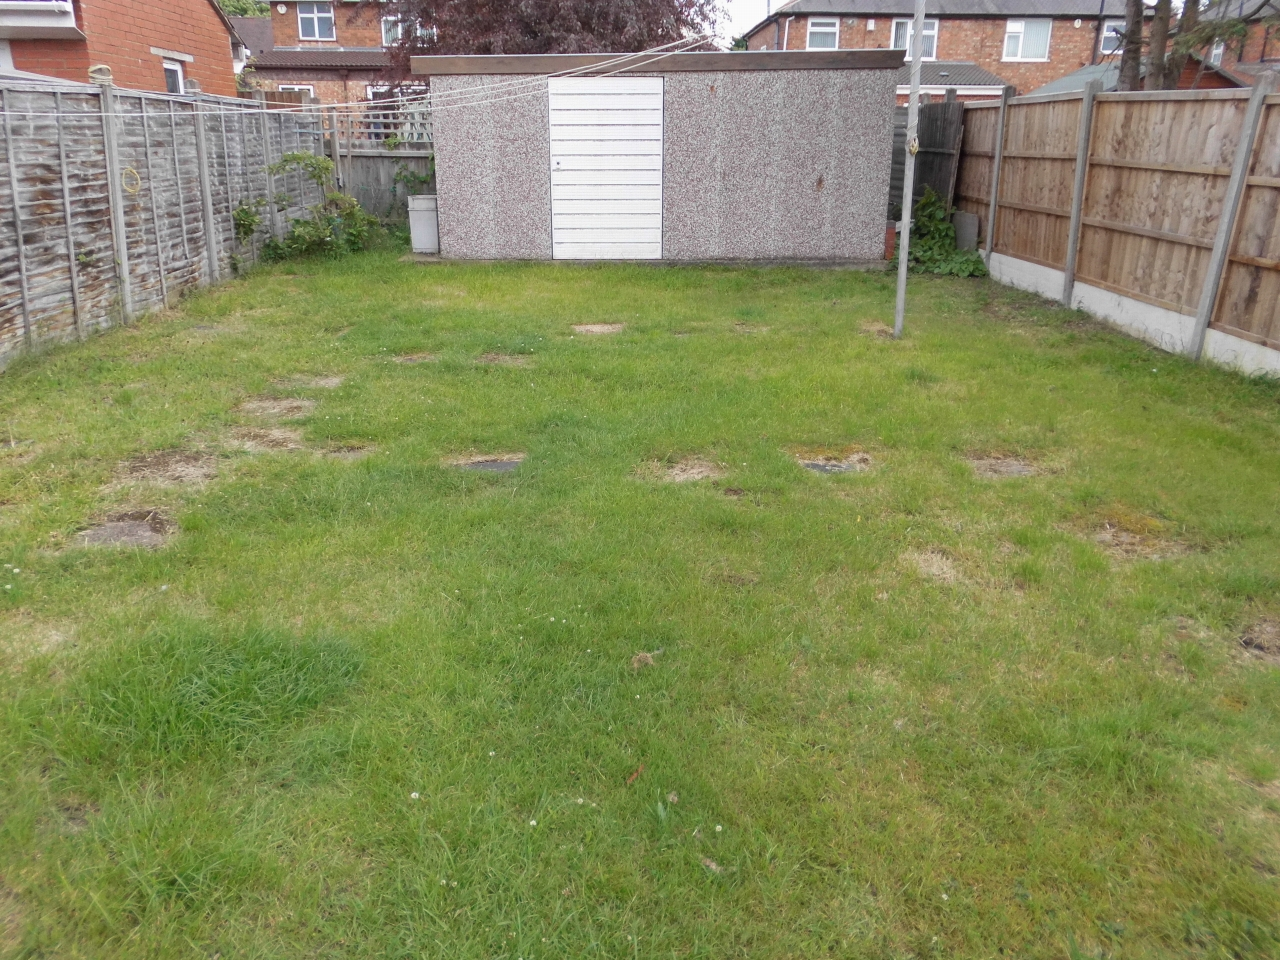 3 bedroom semi-detached house SSTC in Leicester - Photograph 12.